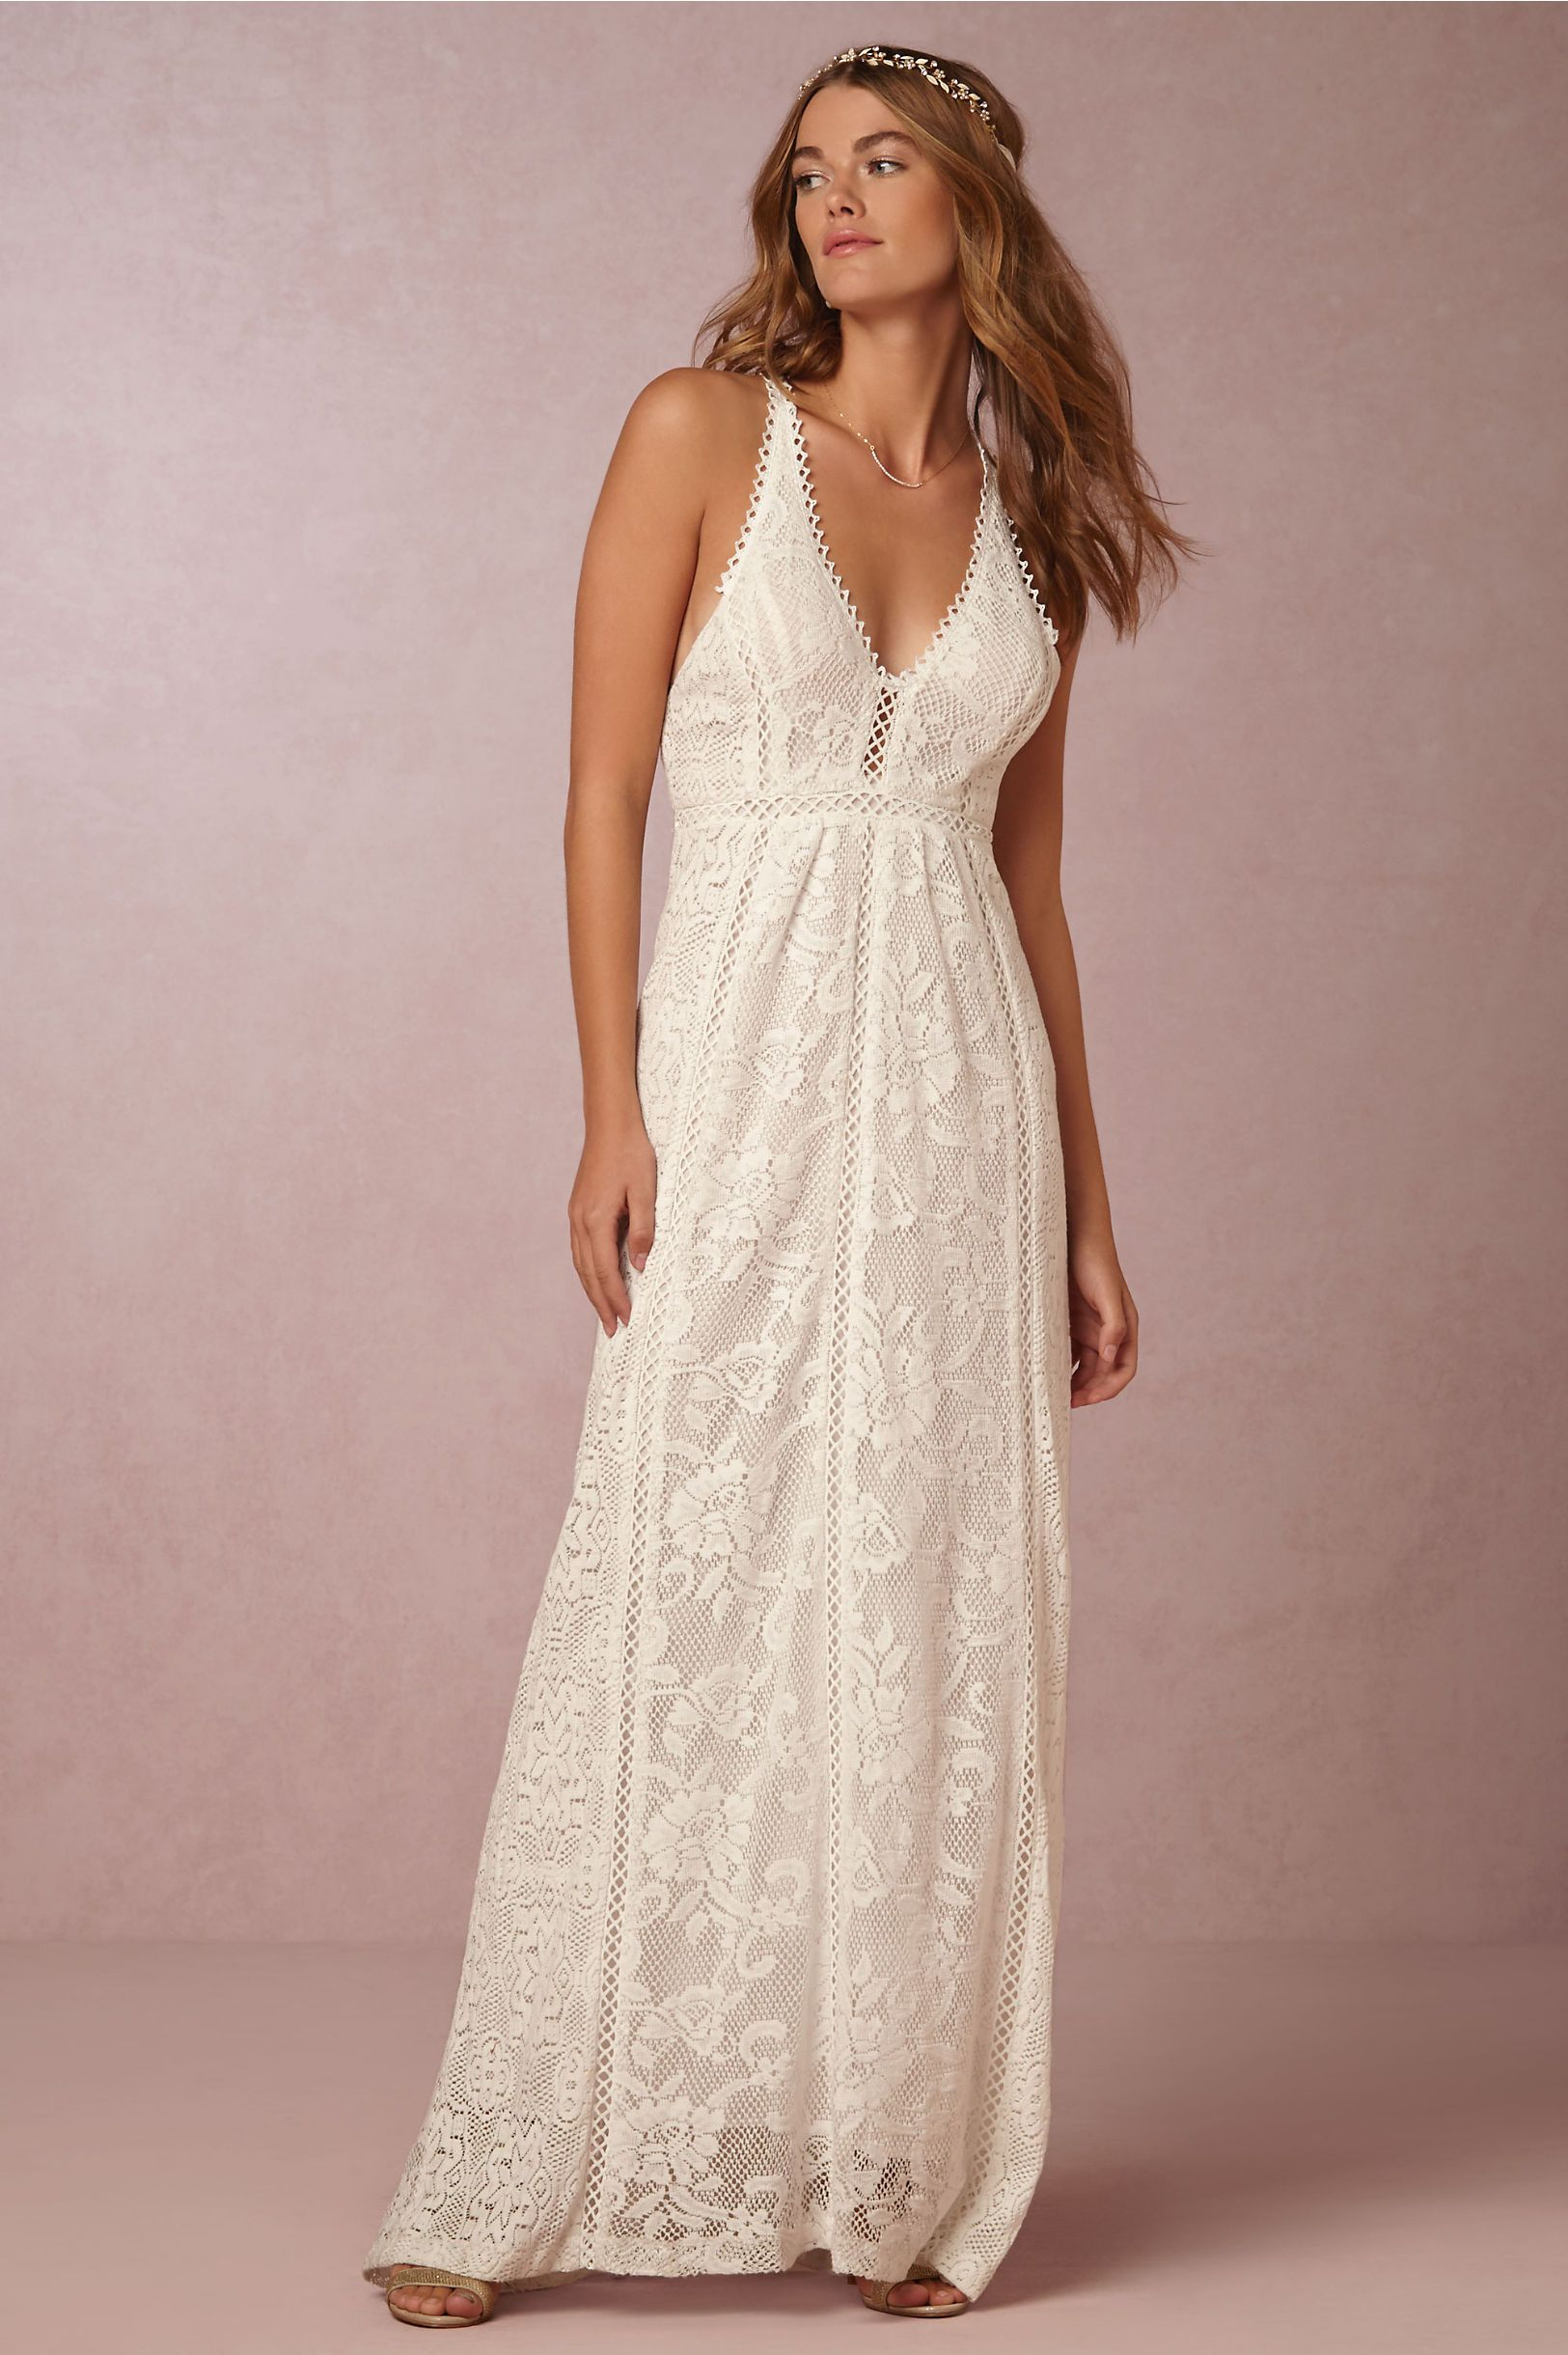 Wear to wedding dresses  Beautiful Wedding Dresses for Beach Weddings  Beach weddings